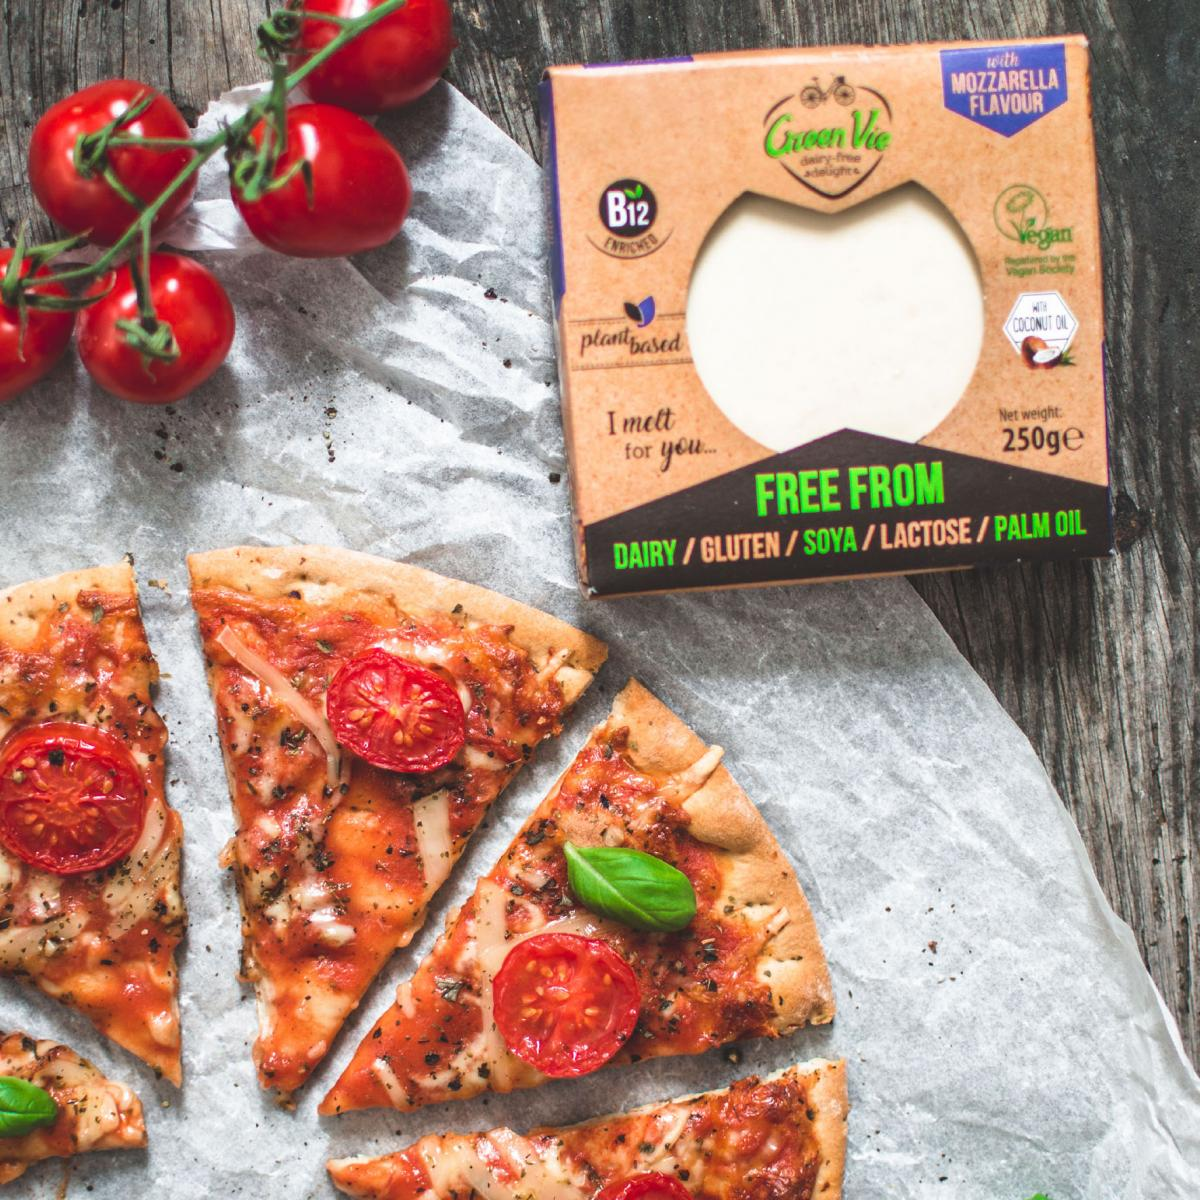 Cheese and tomato pizza cut up next to Green Vie cheese in packaging